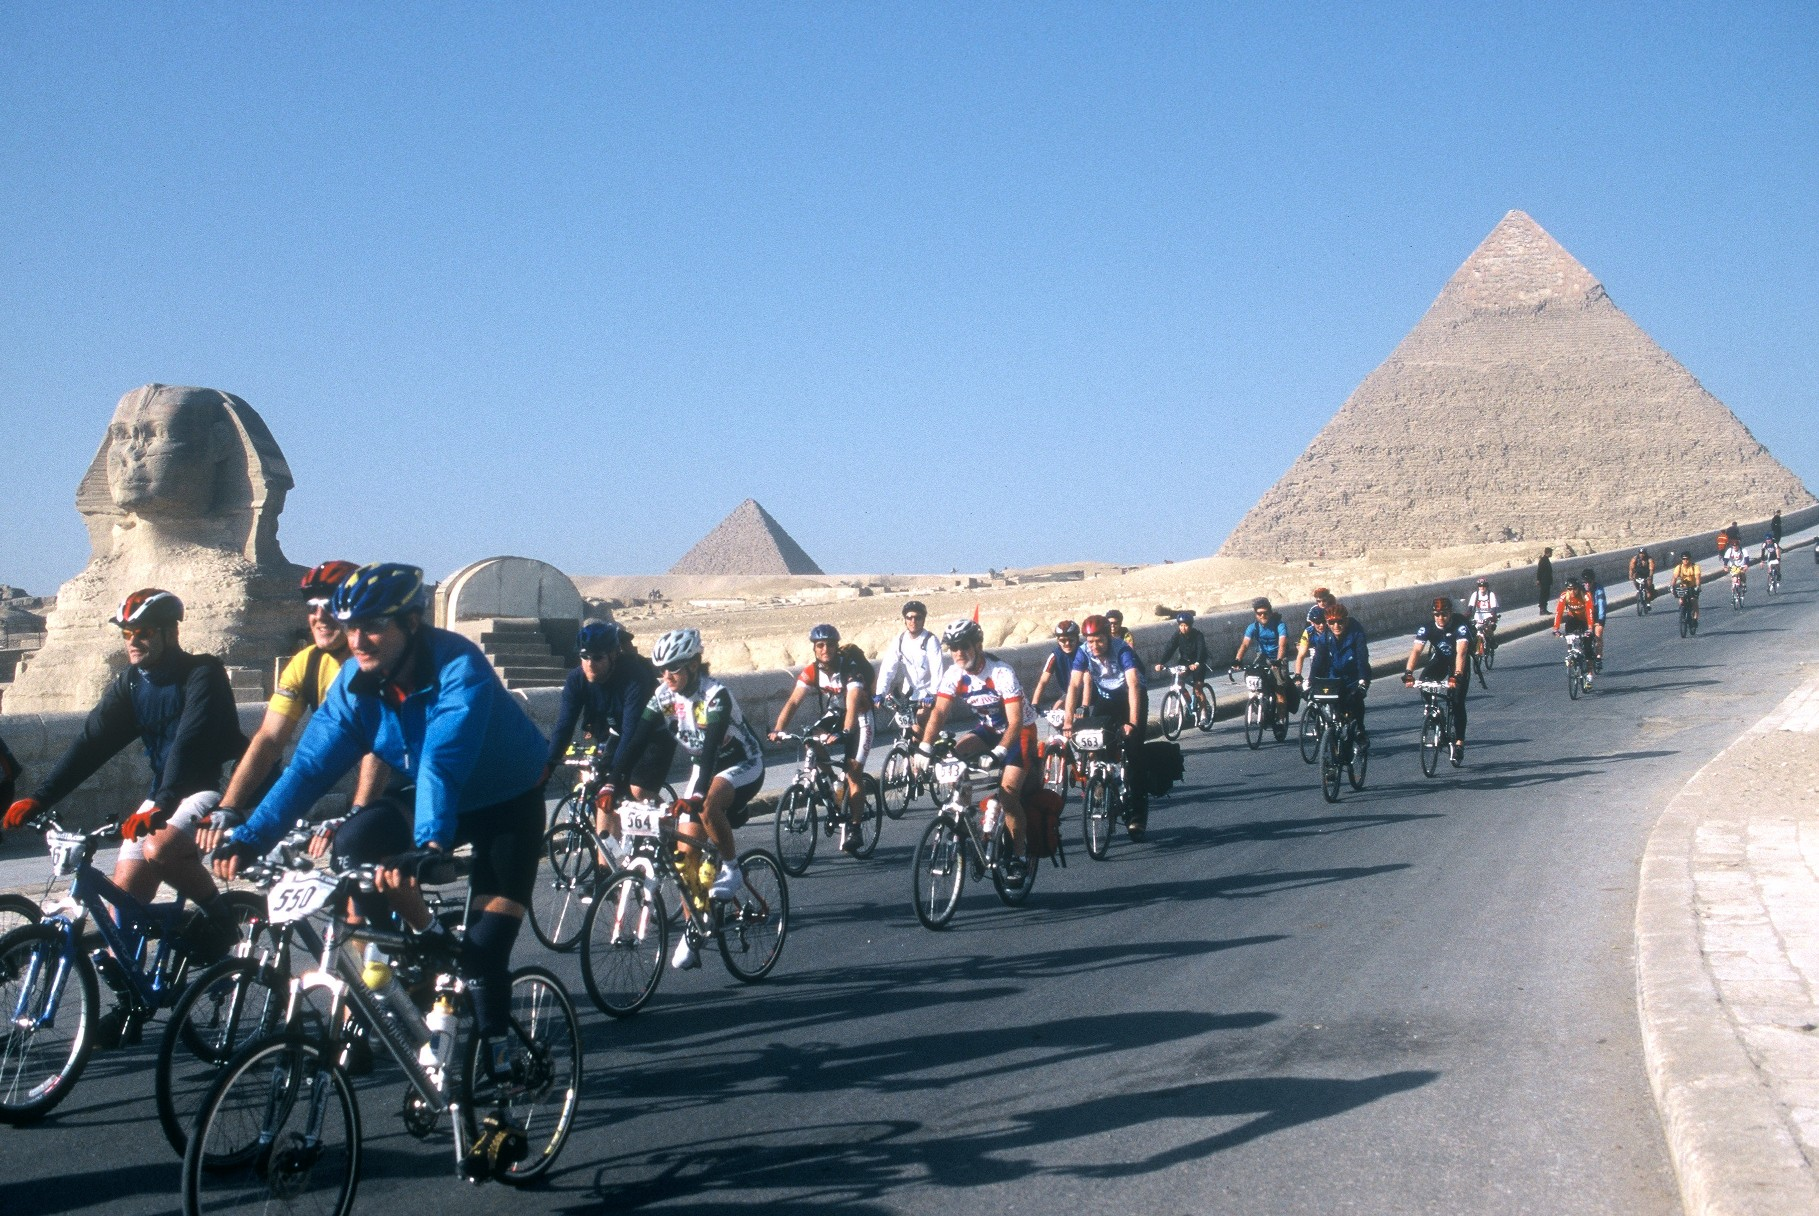 scene from day 1 of the 2004 Tour d'Afrique